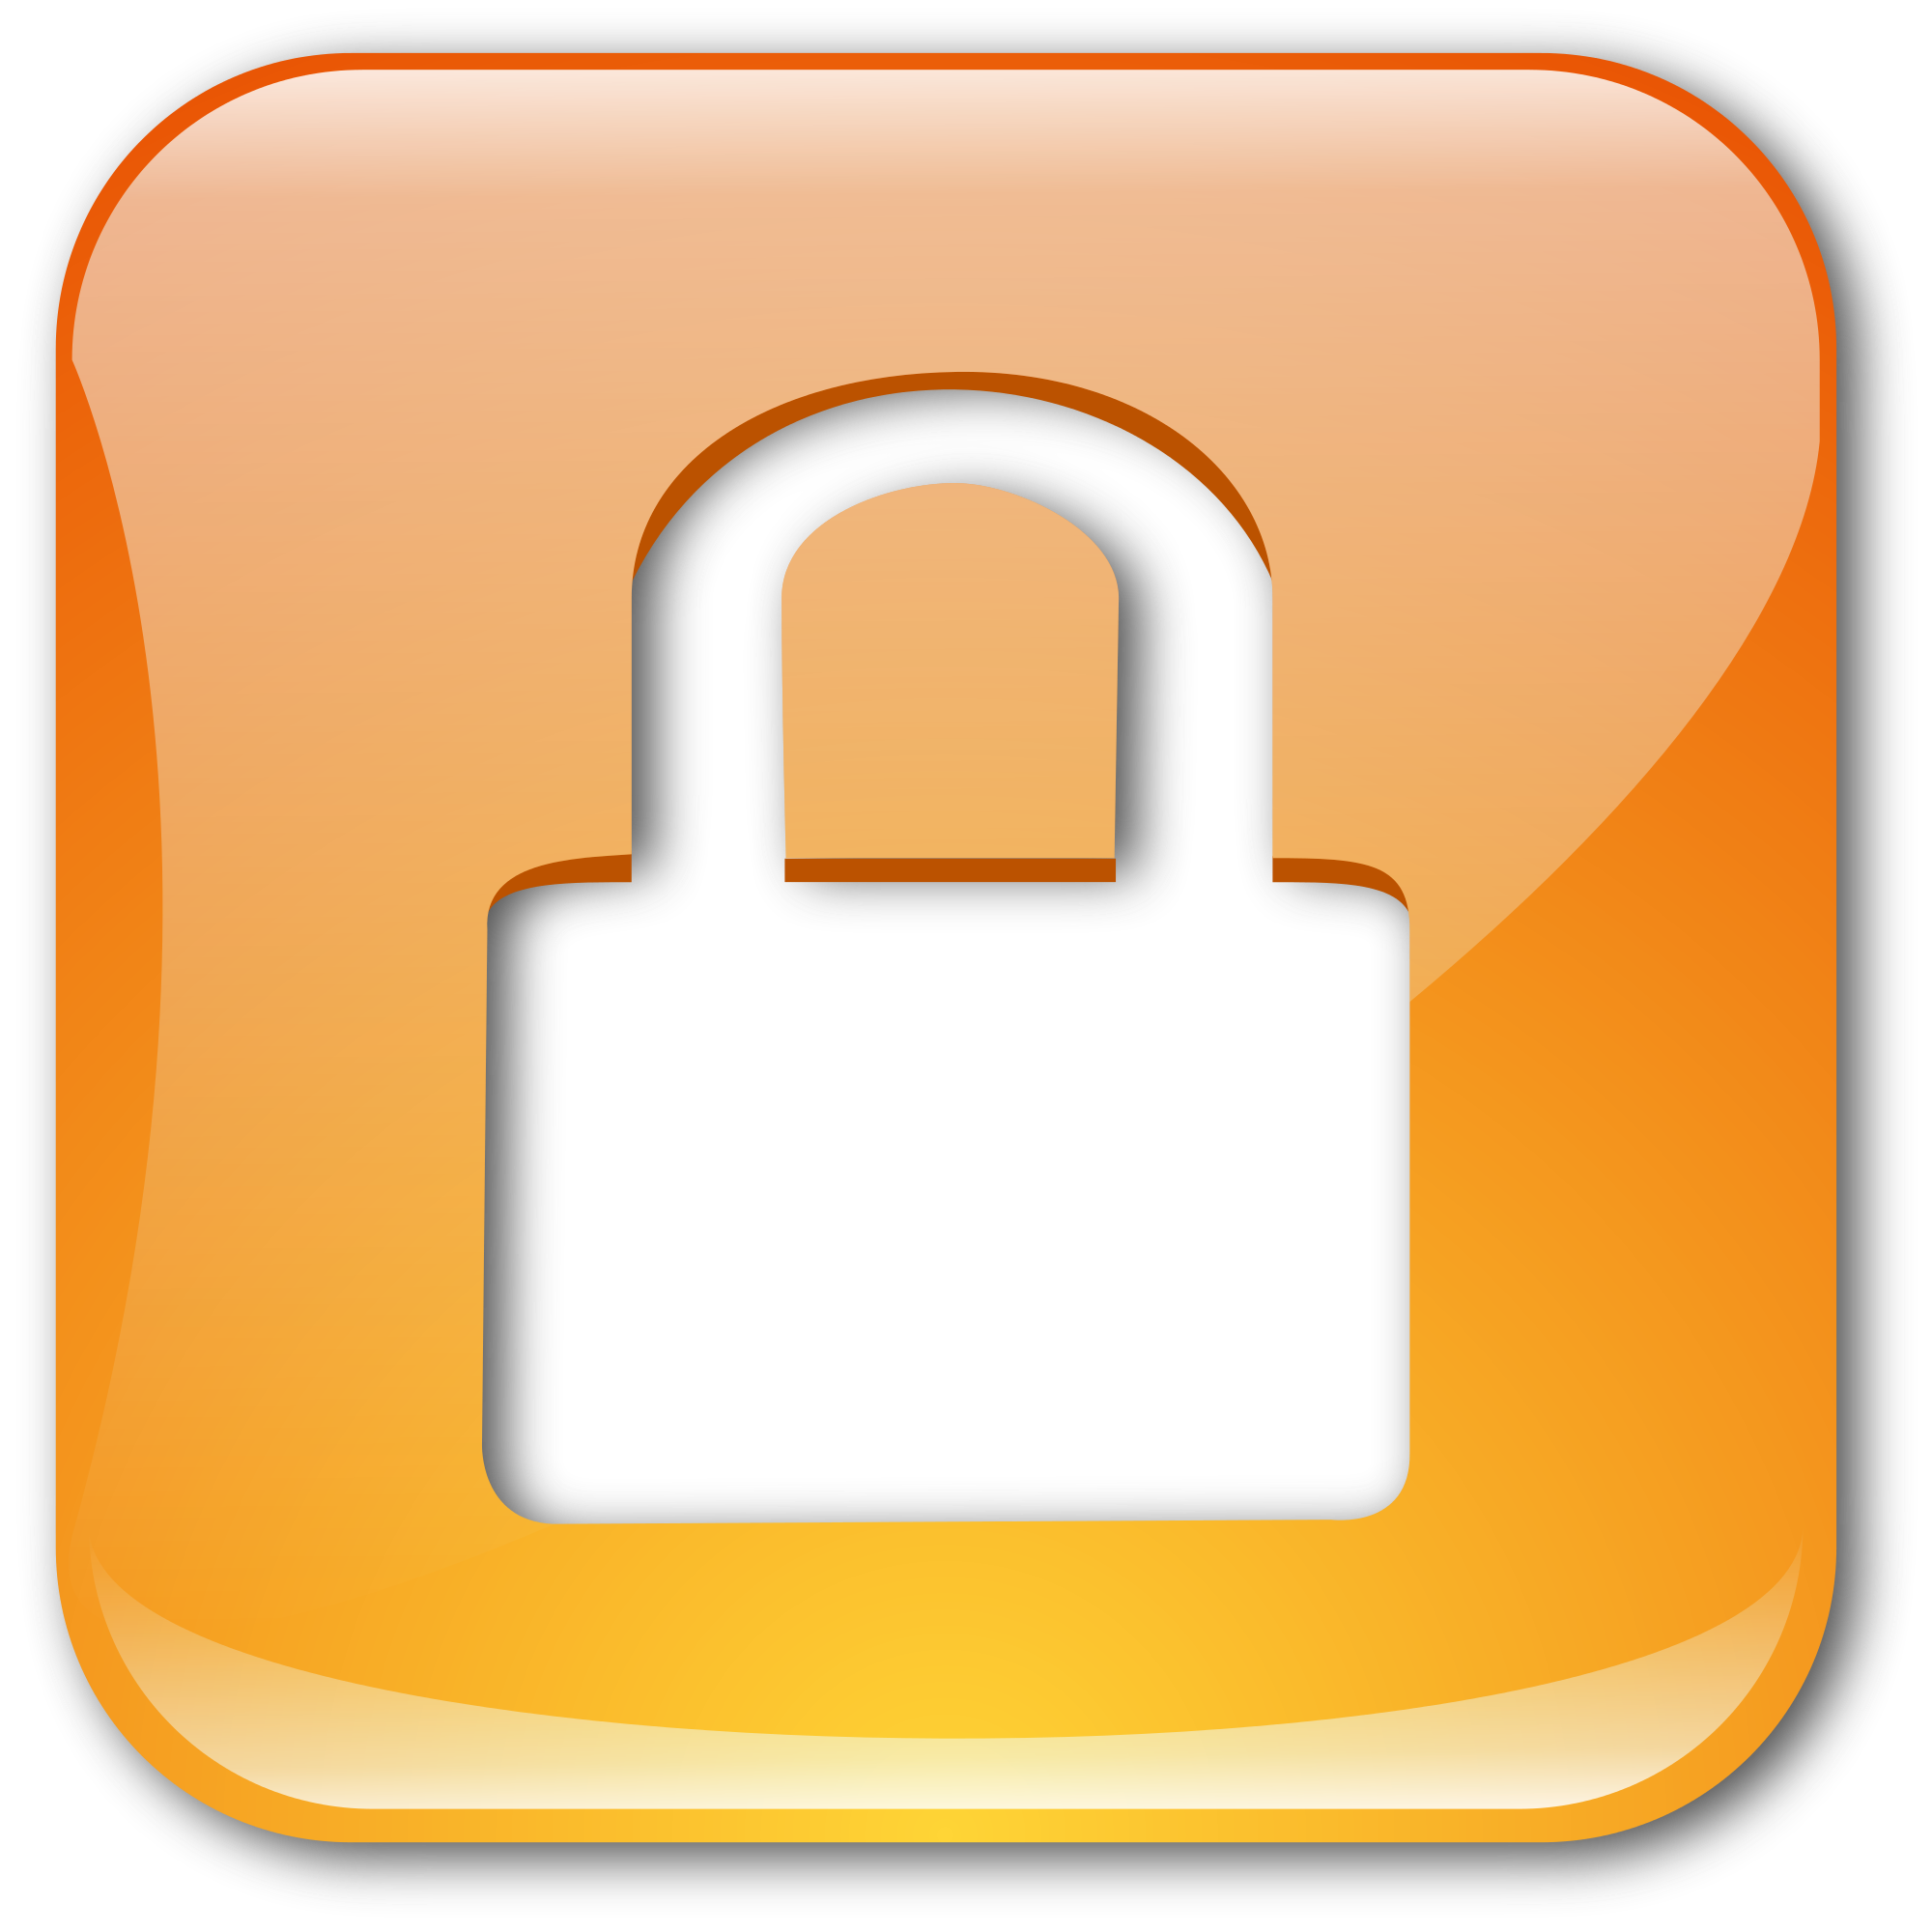 Lock image png. File crystal clear action